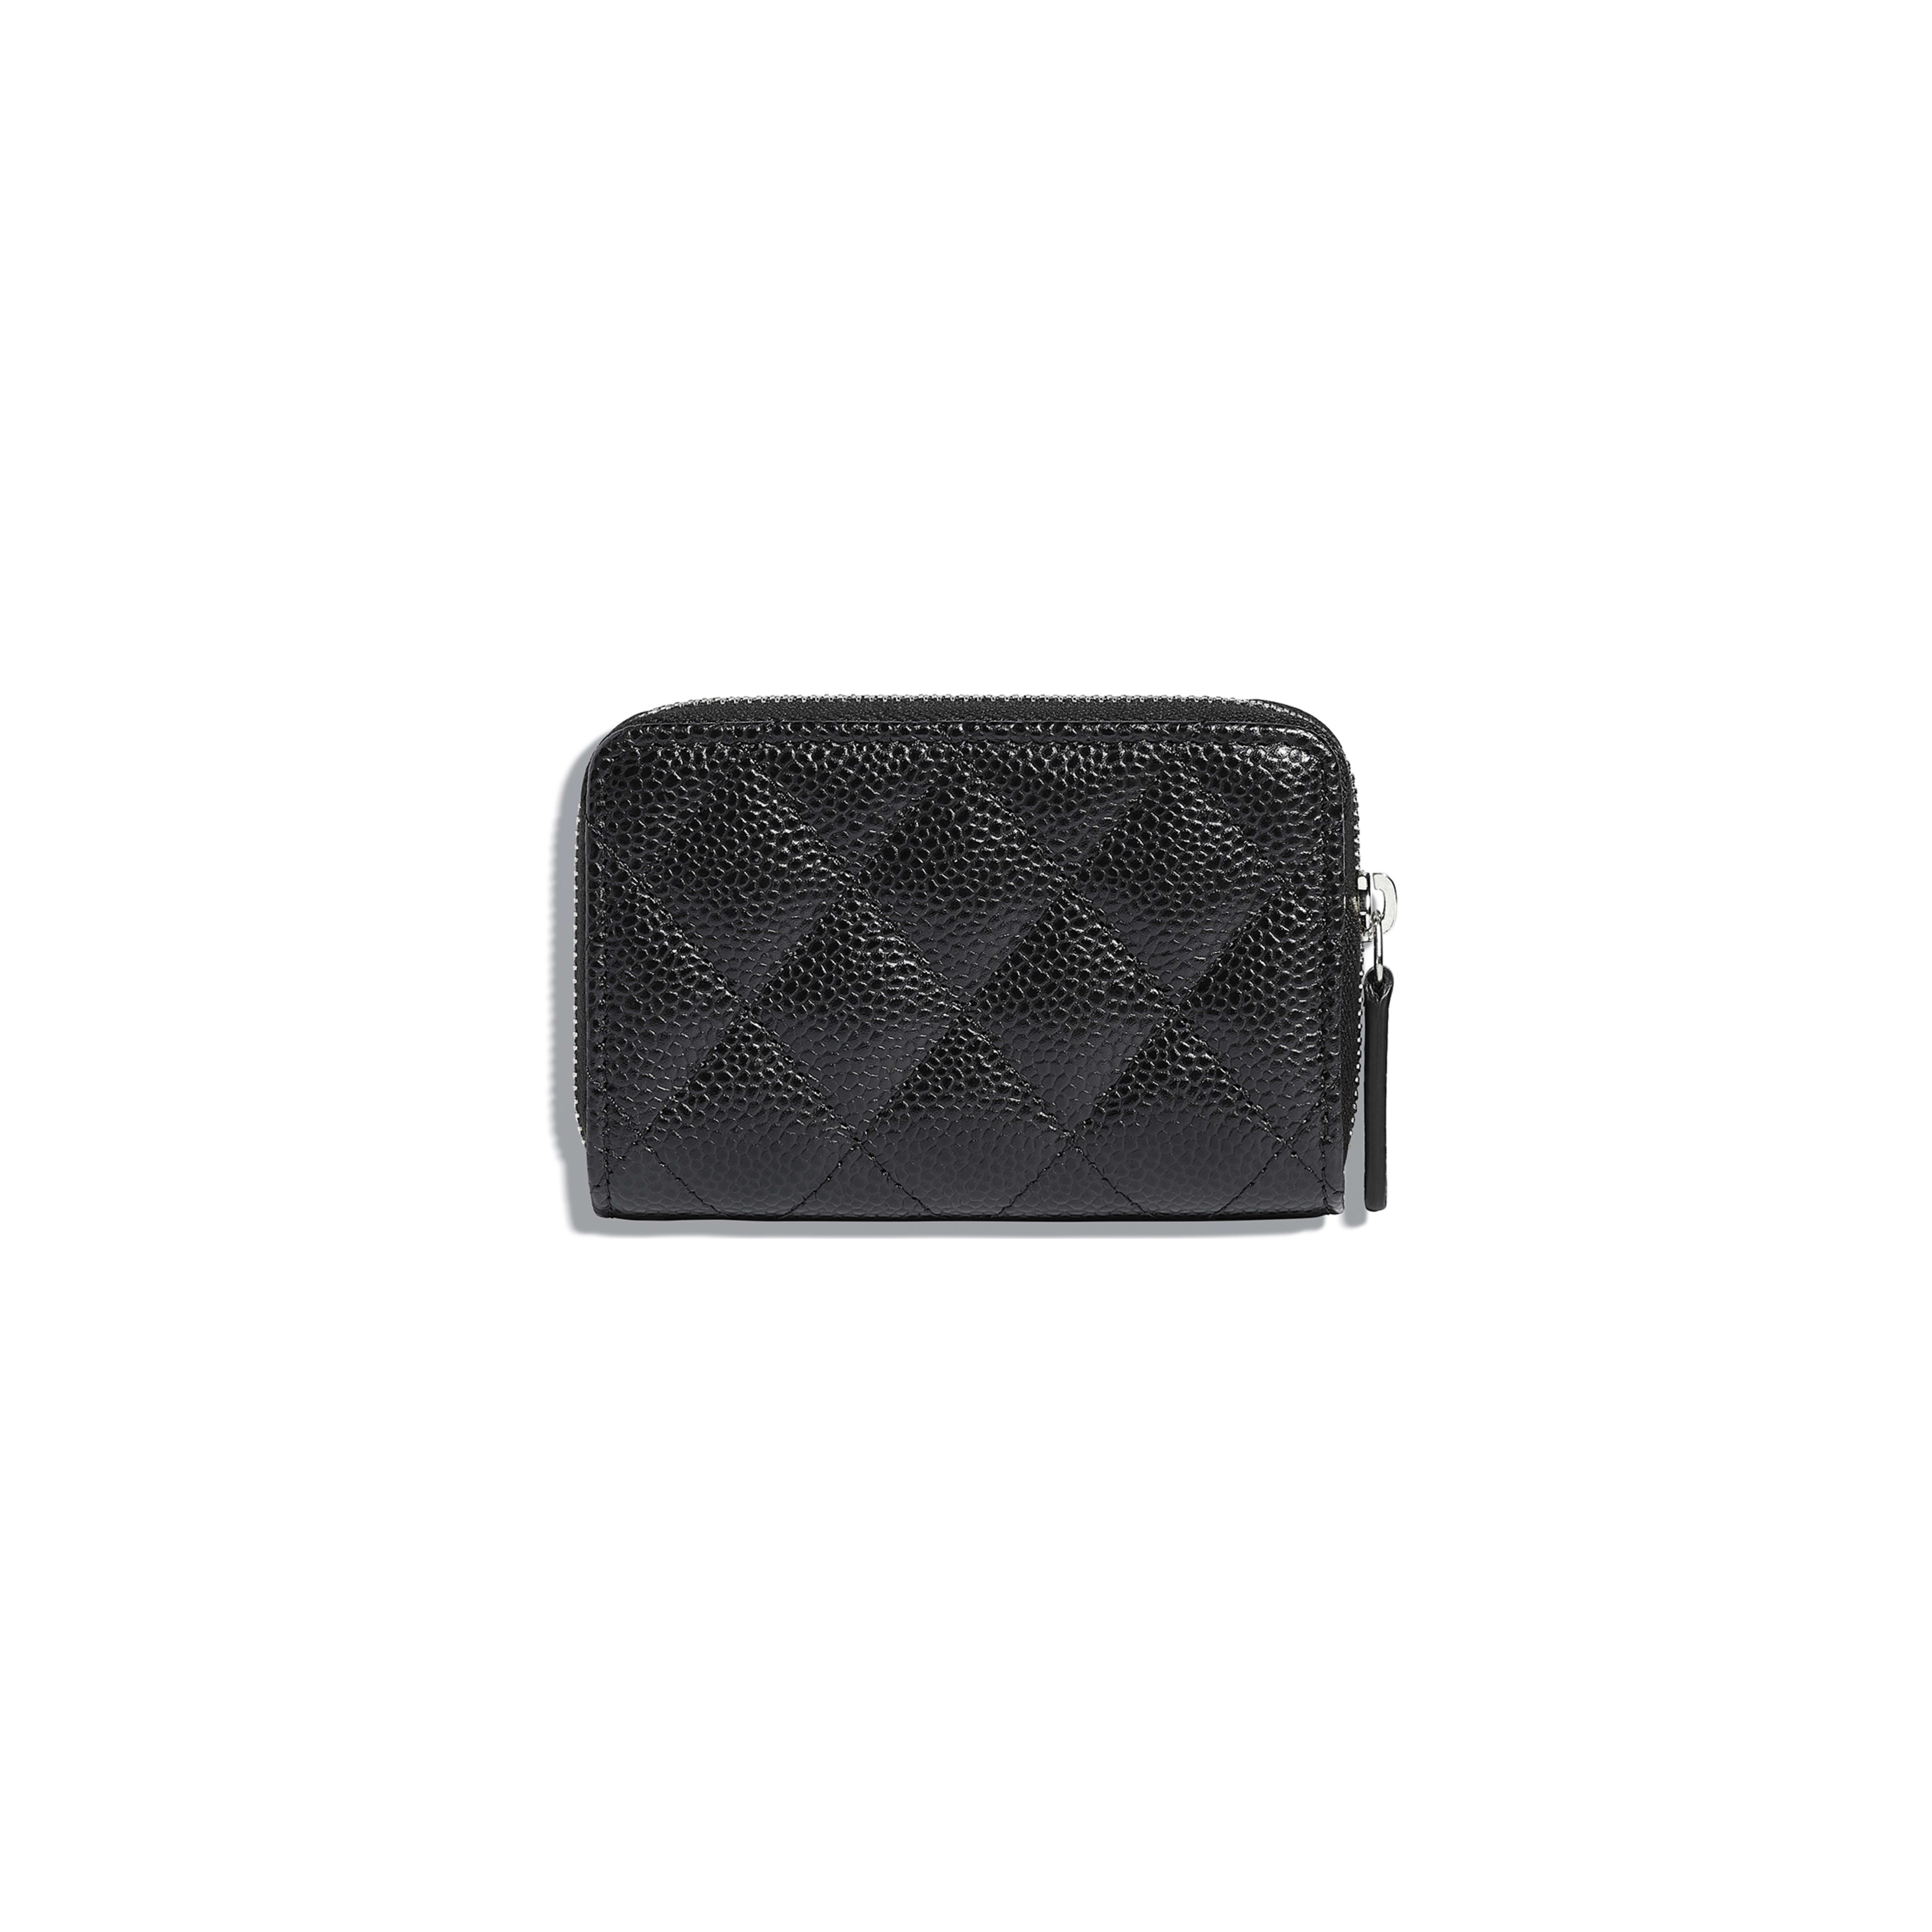 Classic Zipped Coin Purse - Black - Grained Calfskin & Silver-Tone Metal - Alternative view - see full sized version